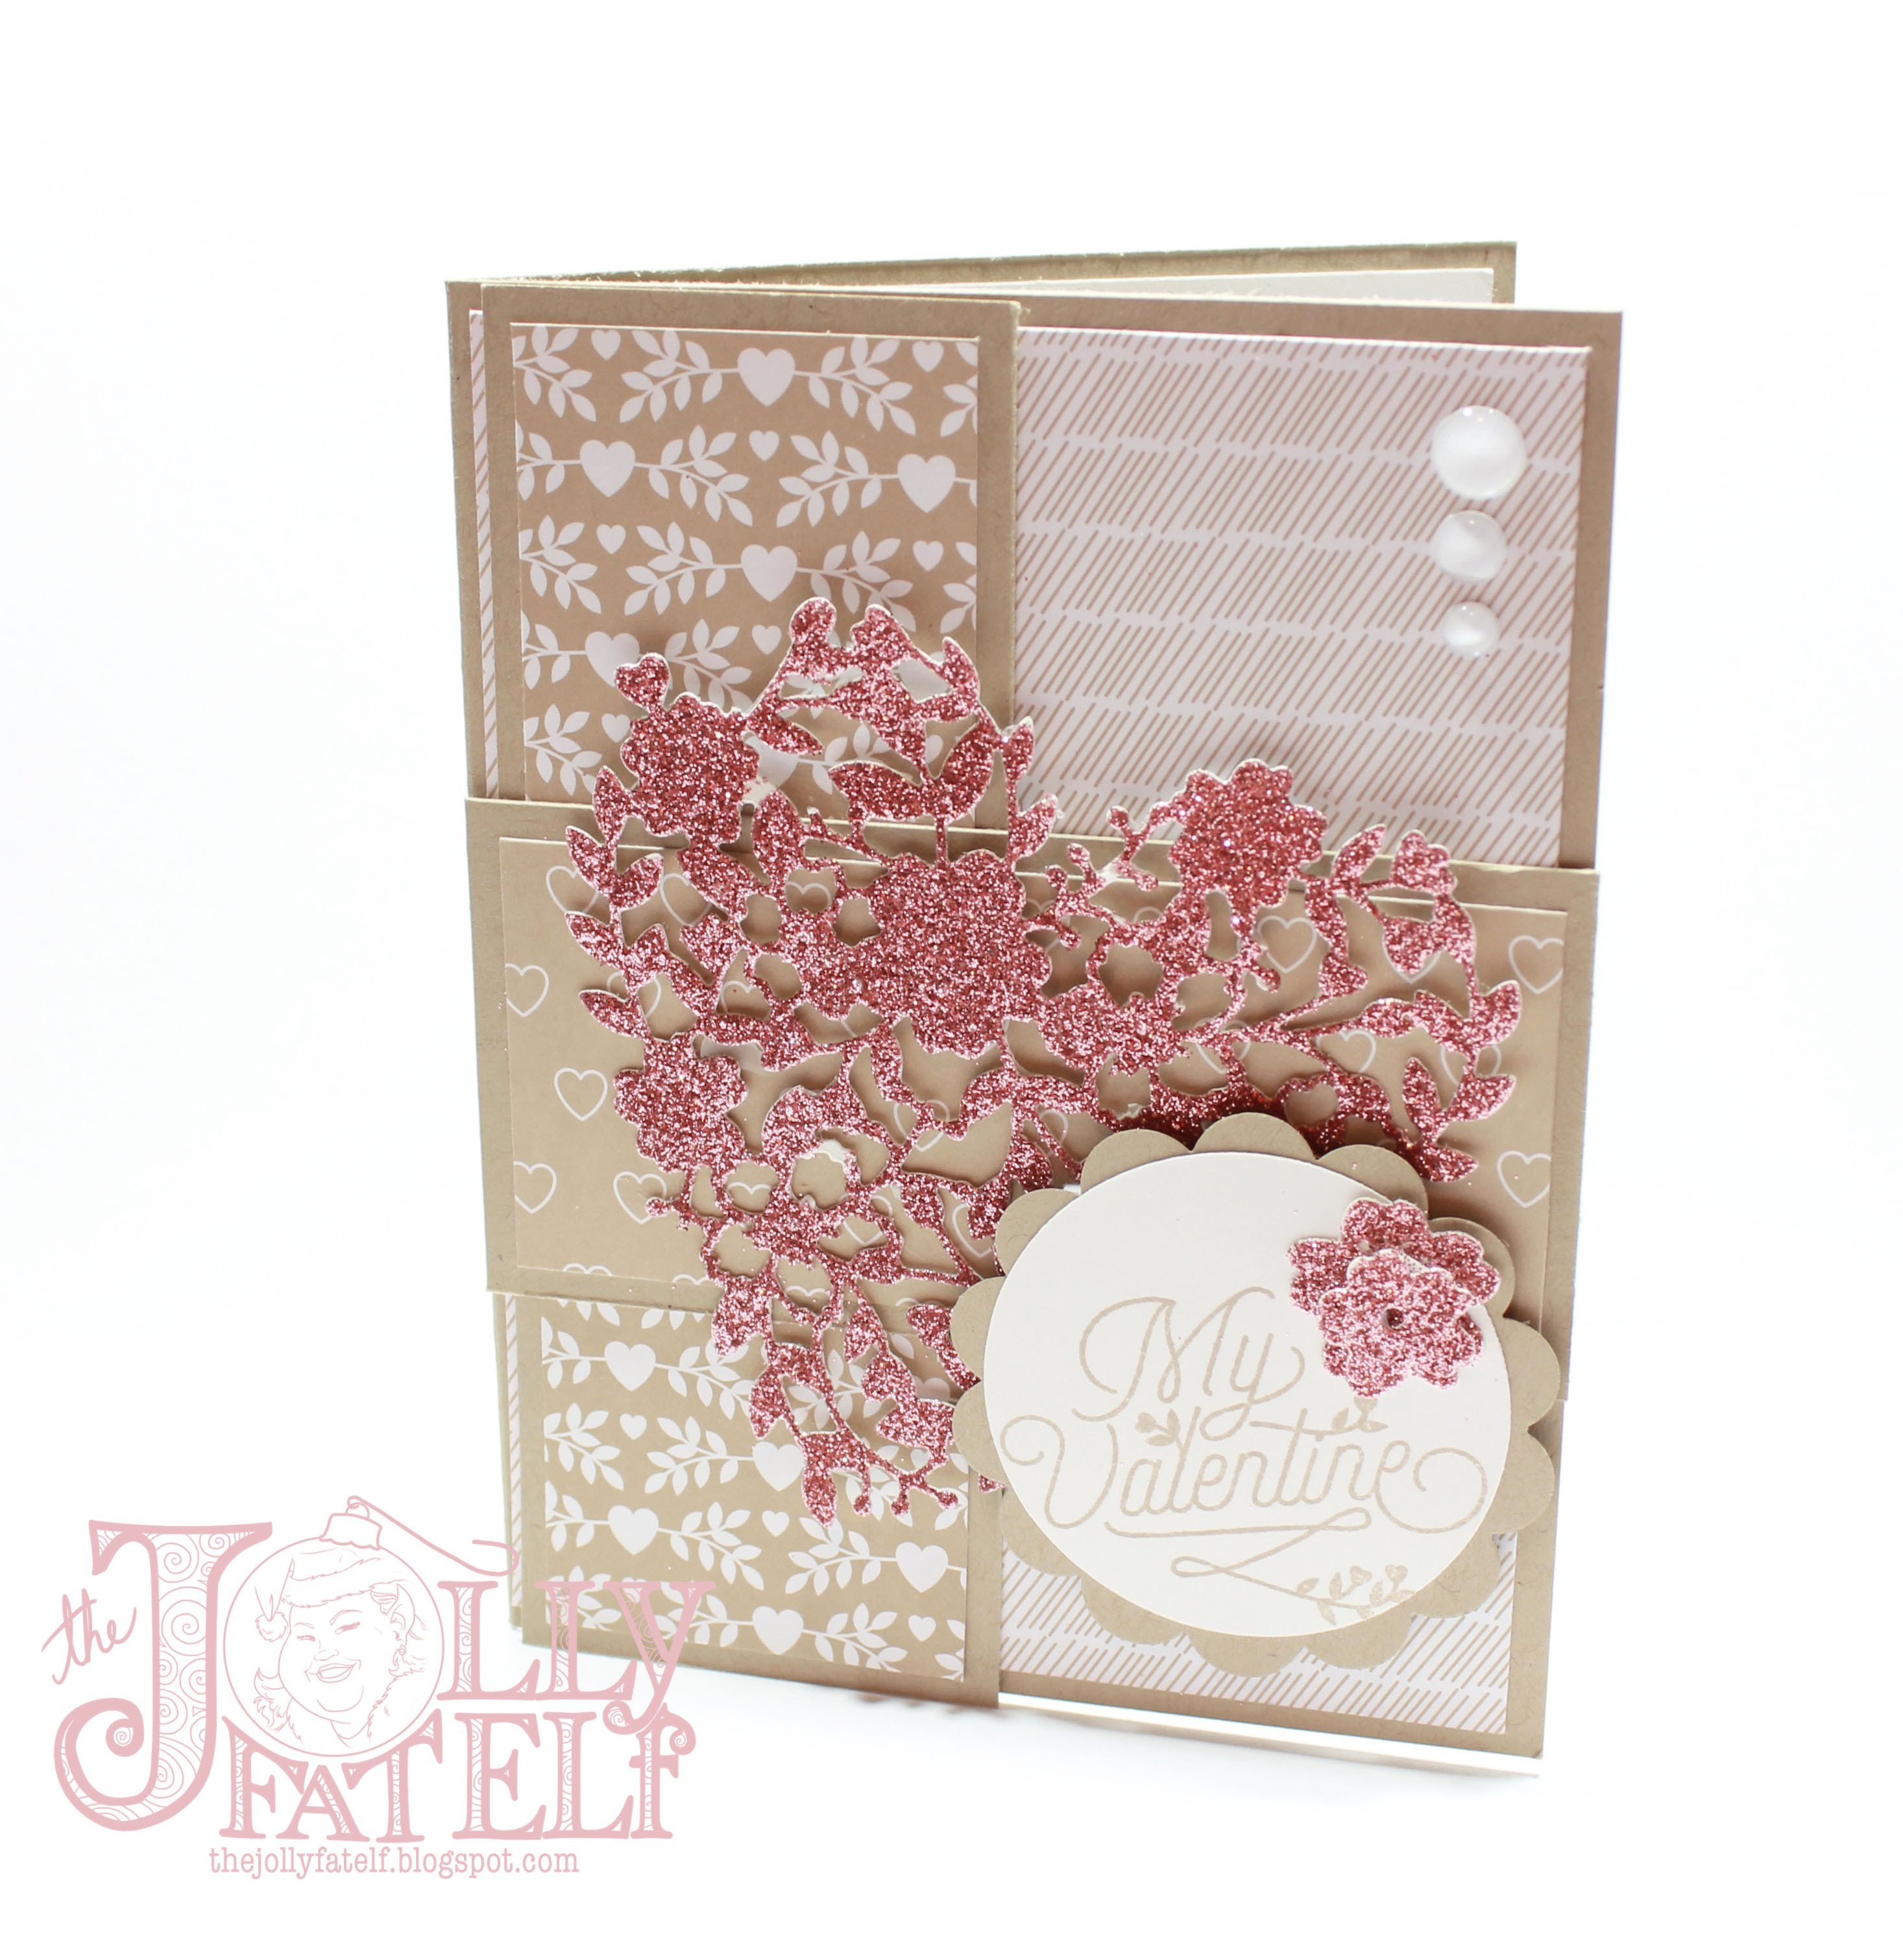 Stampin' Up! and Stampin' with the Elf Stampy Valentine's Week Project 4